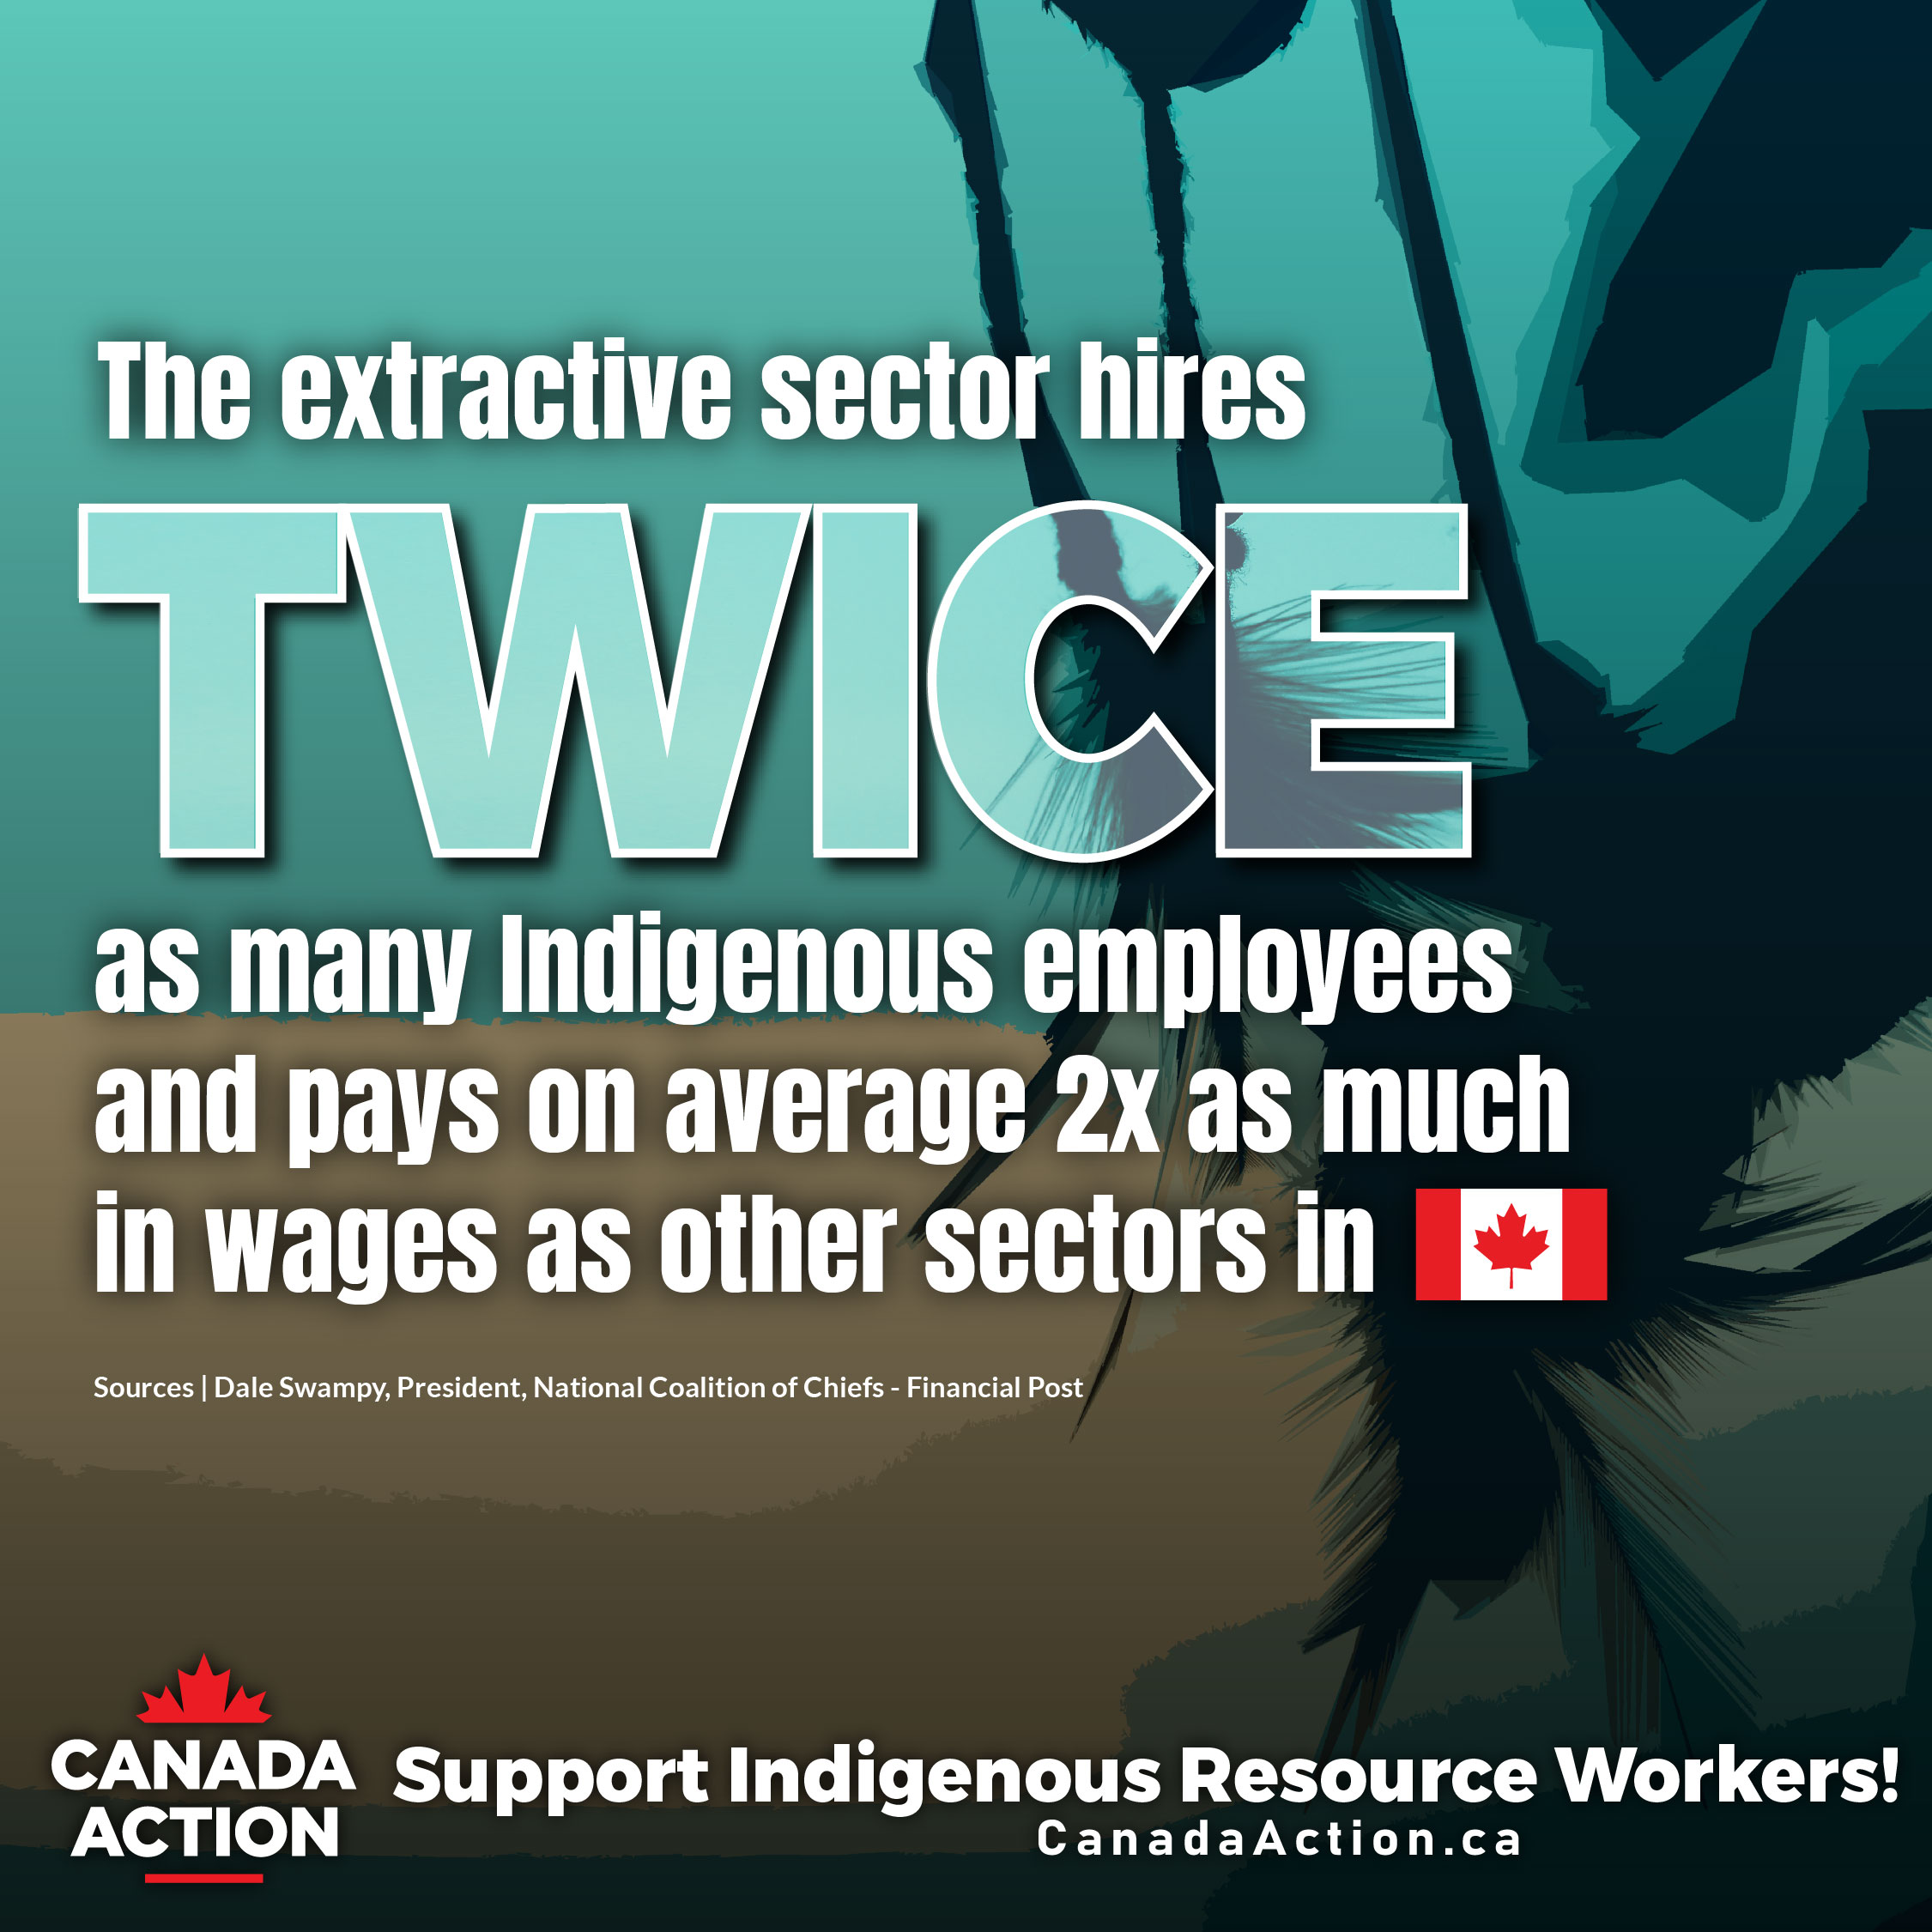 Canada Natural Resource Sectors Hire Many Indigenous Peoples and Pay them More